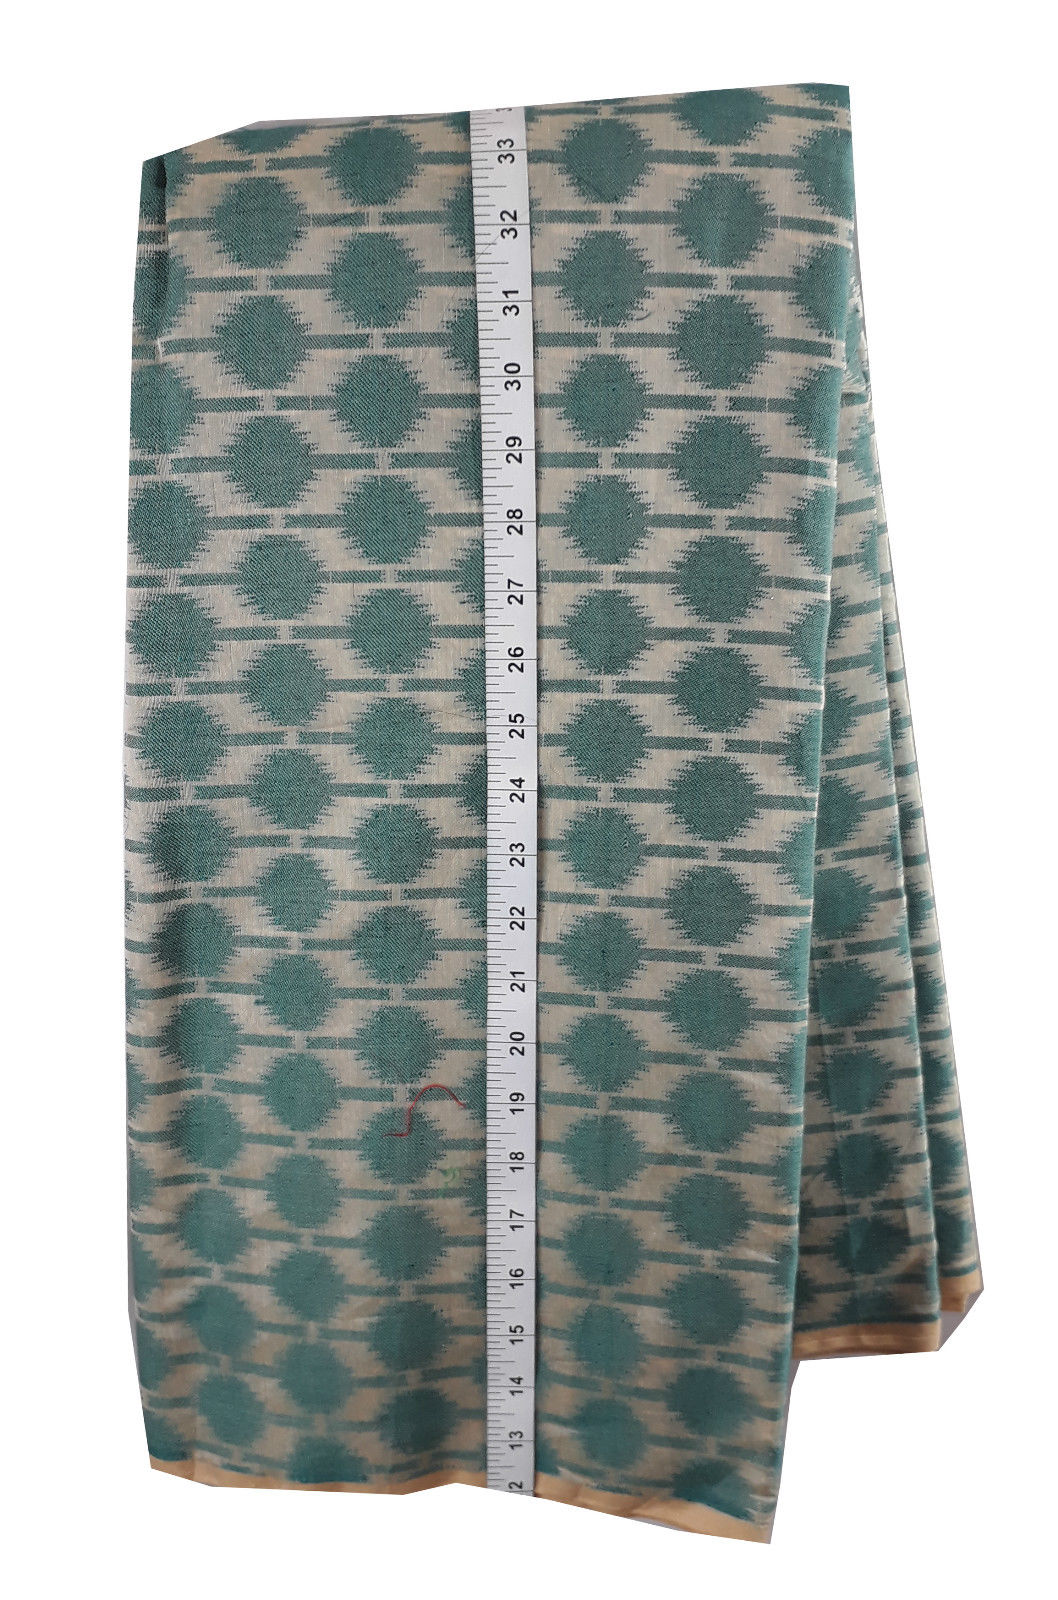 indian beaded fabric buy online buy blouse fabric online Embroidery Chanderi Cotton Sea Green, Cream 44 inches Wide 1730